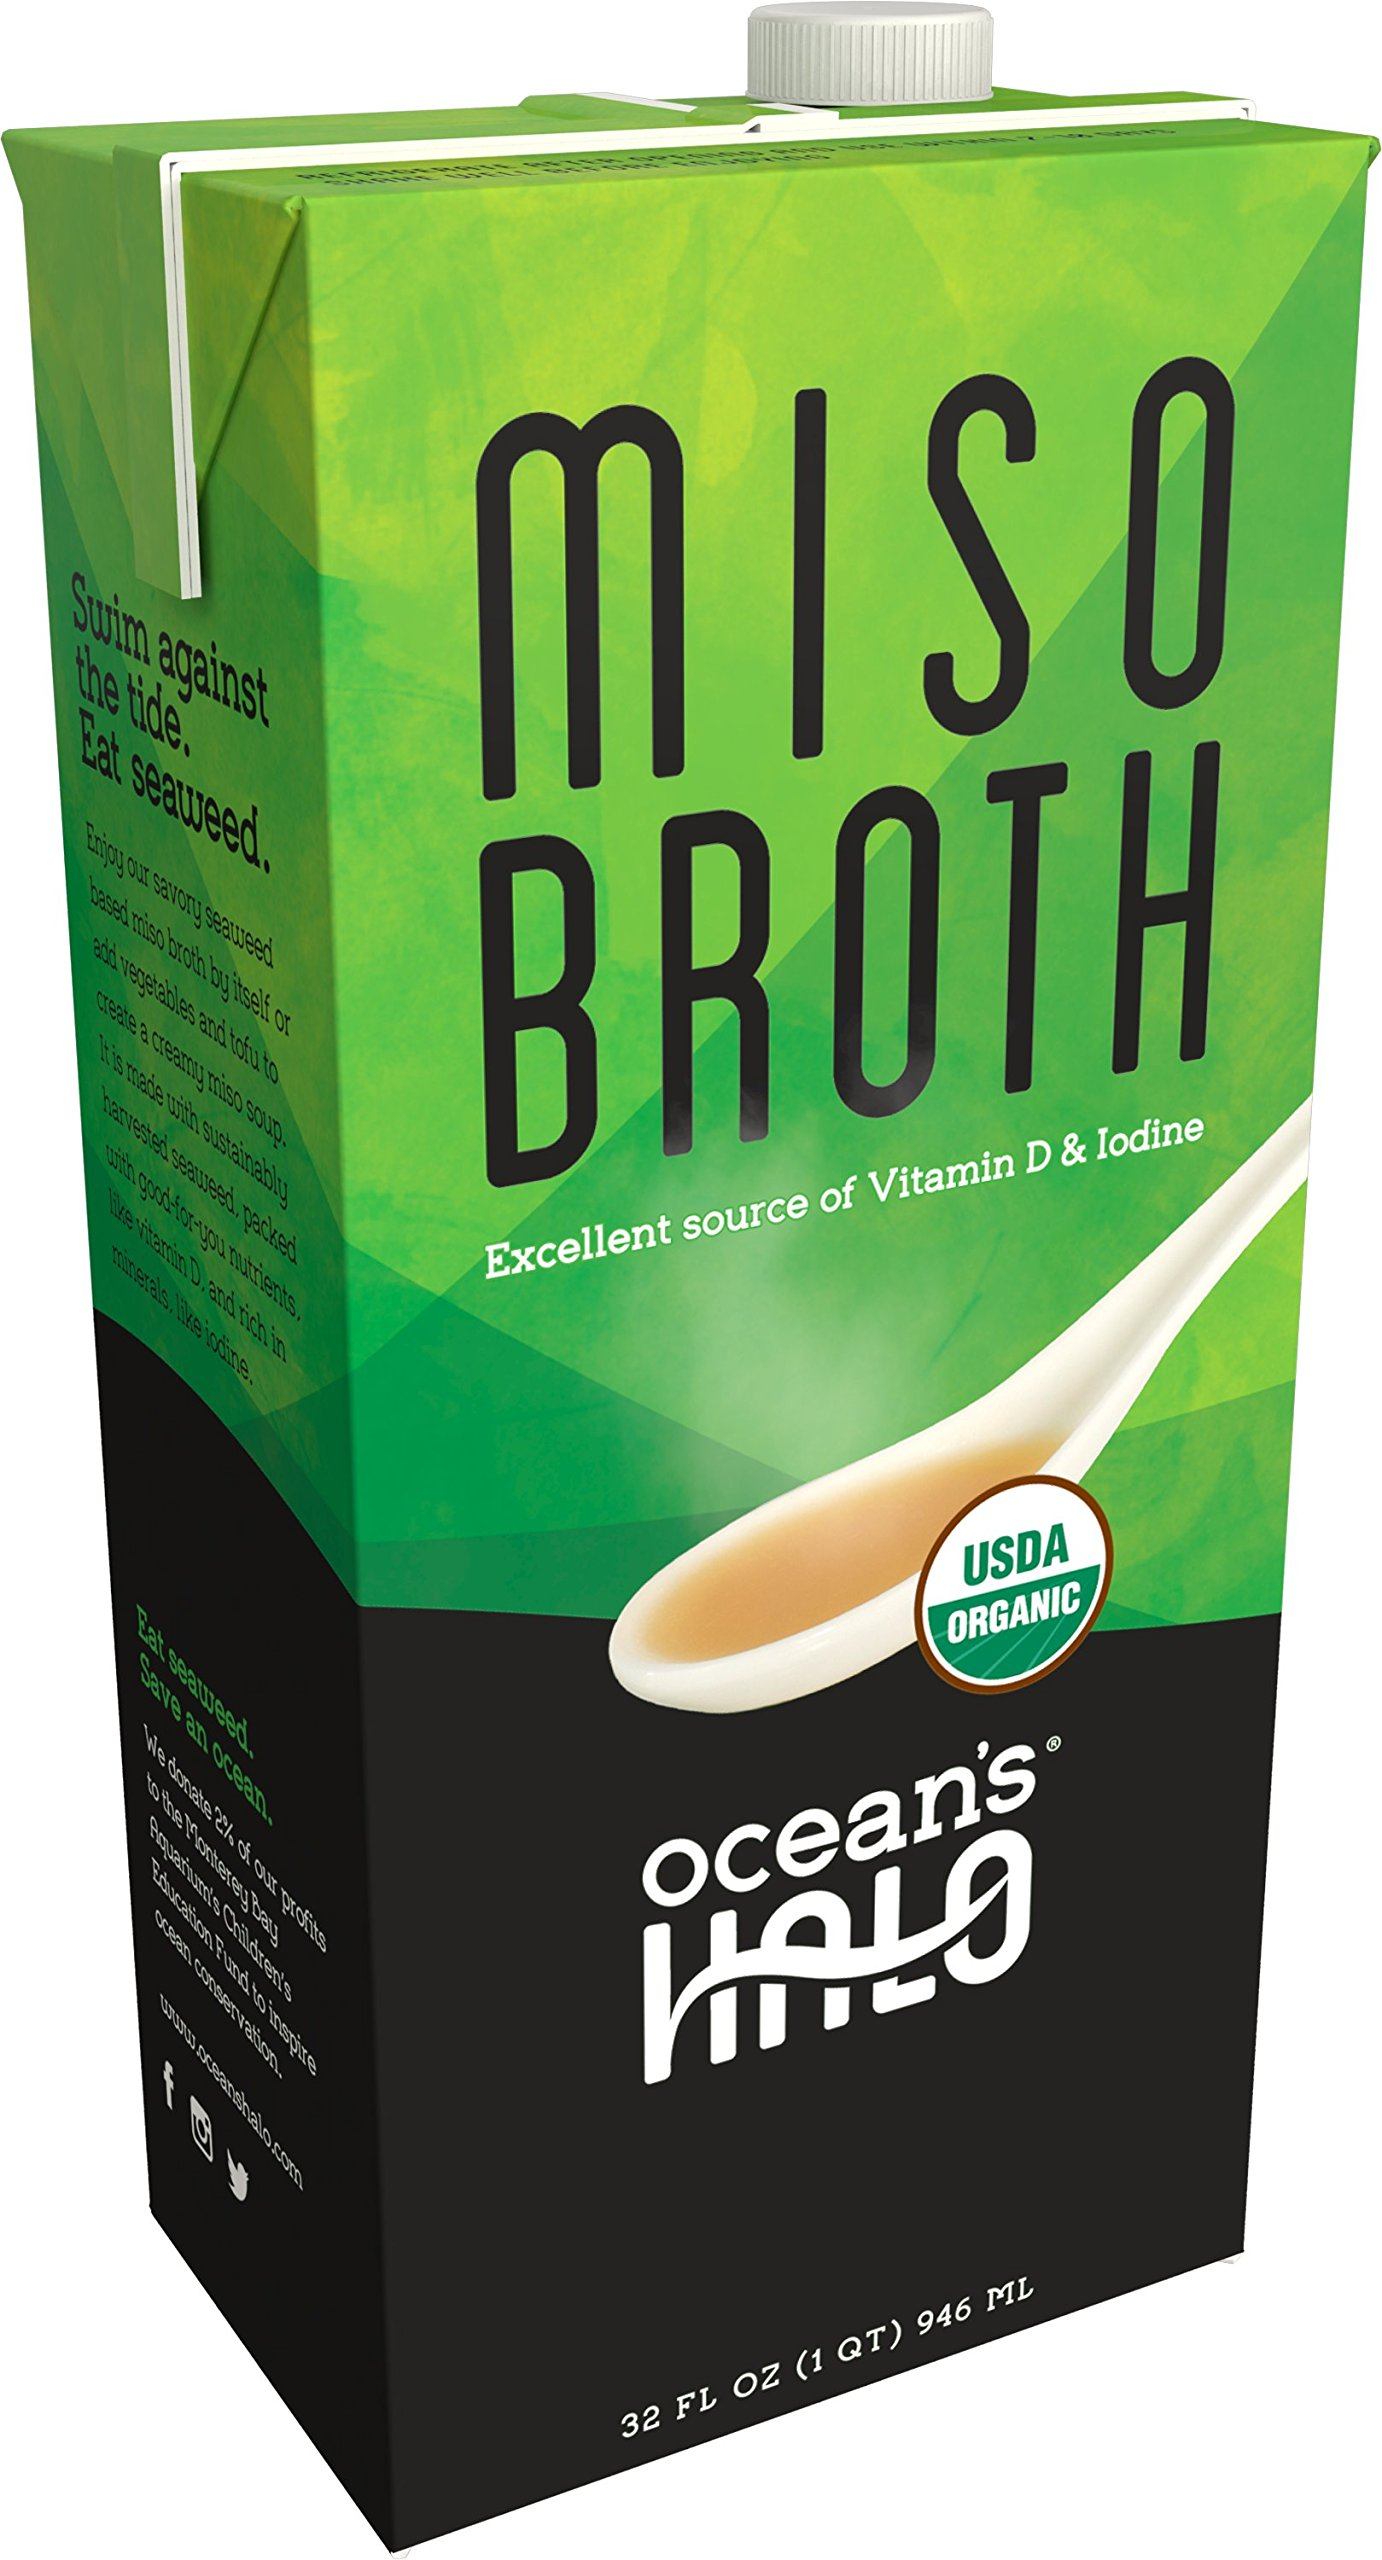 32 oz Organic Miso Broth by Ocean's Halo. This delicious kelp-based broth is loaded with authentic flavors while delivering vitamins, minerals and protein! USDA Organic, GF Ingredients & Vegan